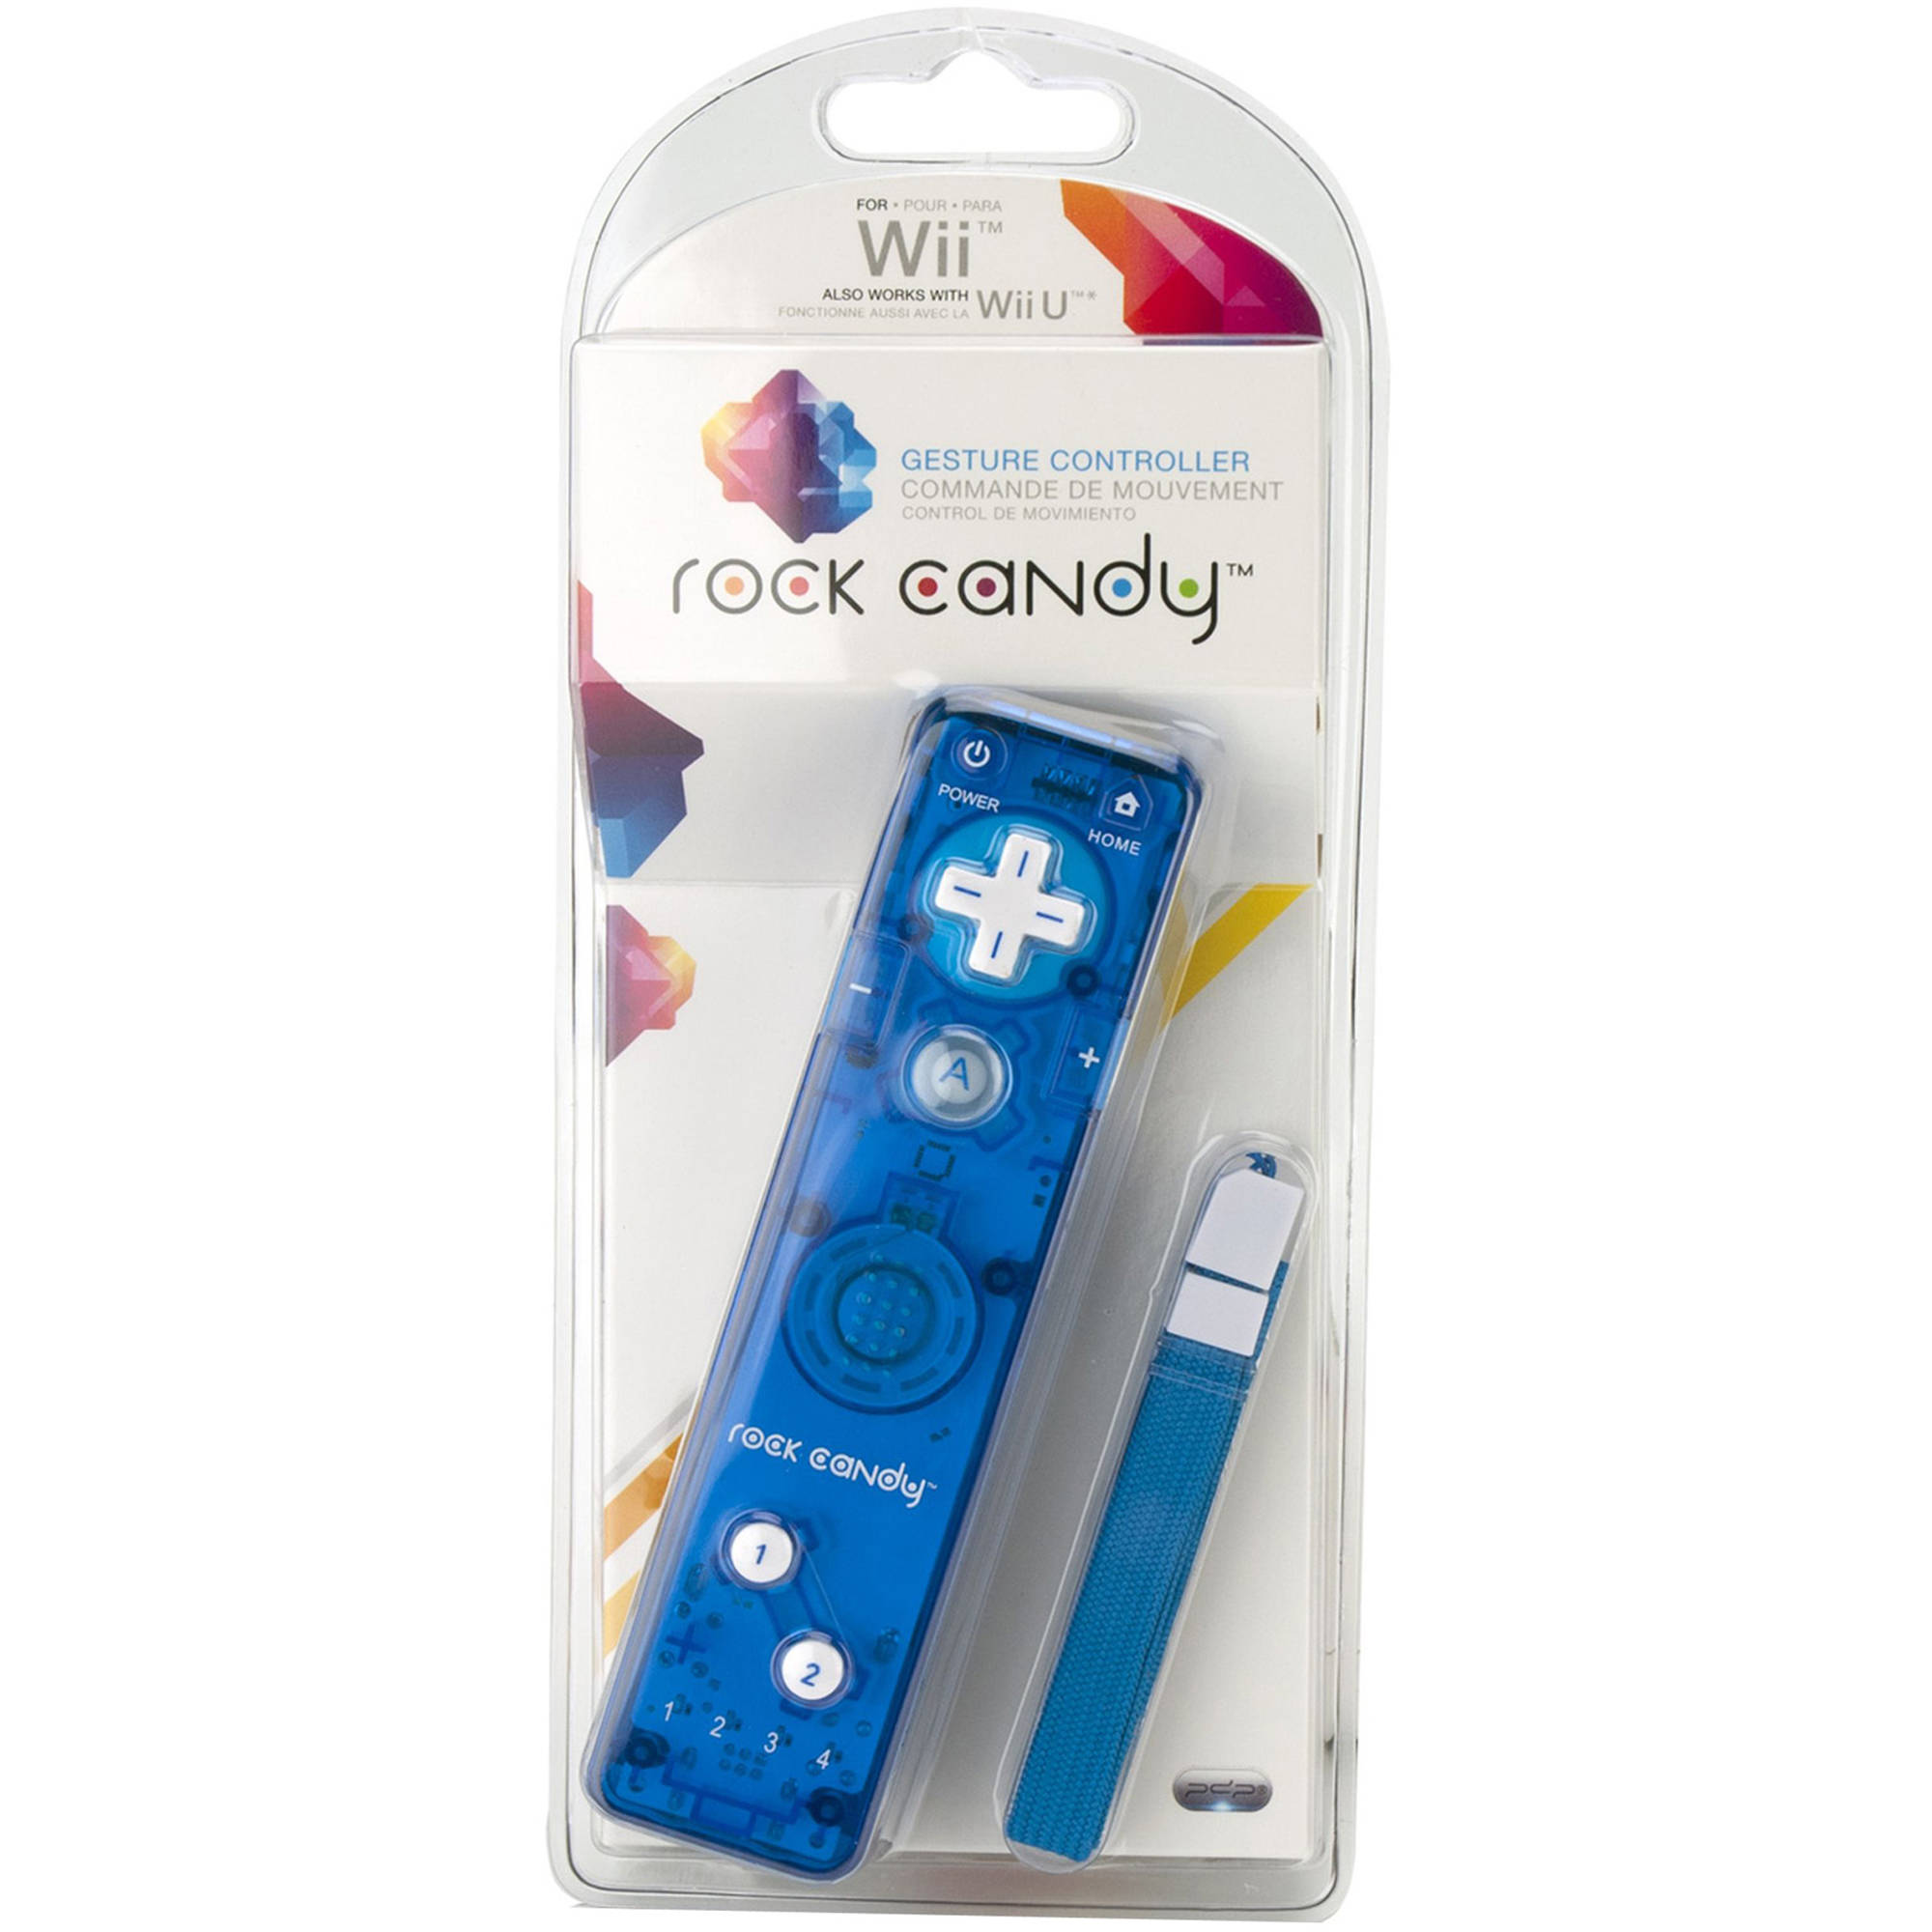 PDP Rock Candy Gesture Controller for Wii/Wii U, Blueberry Boom